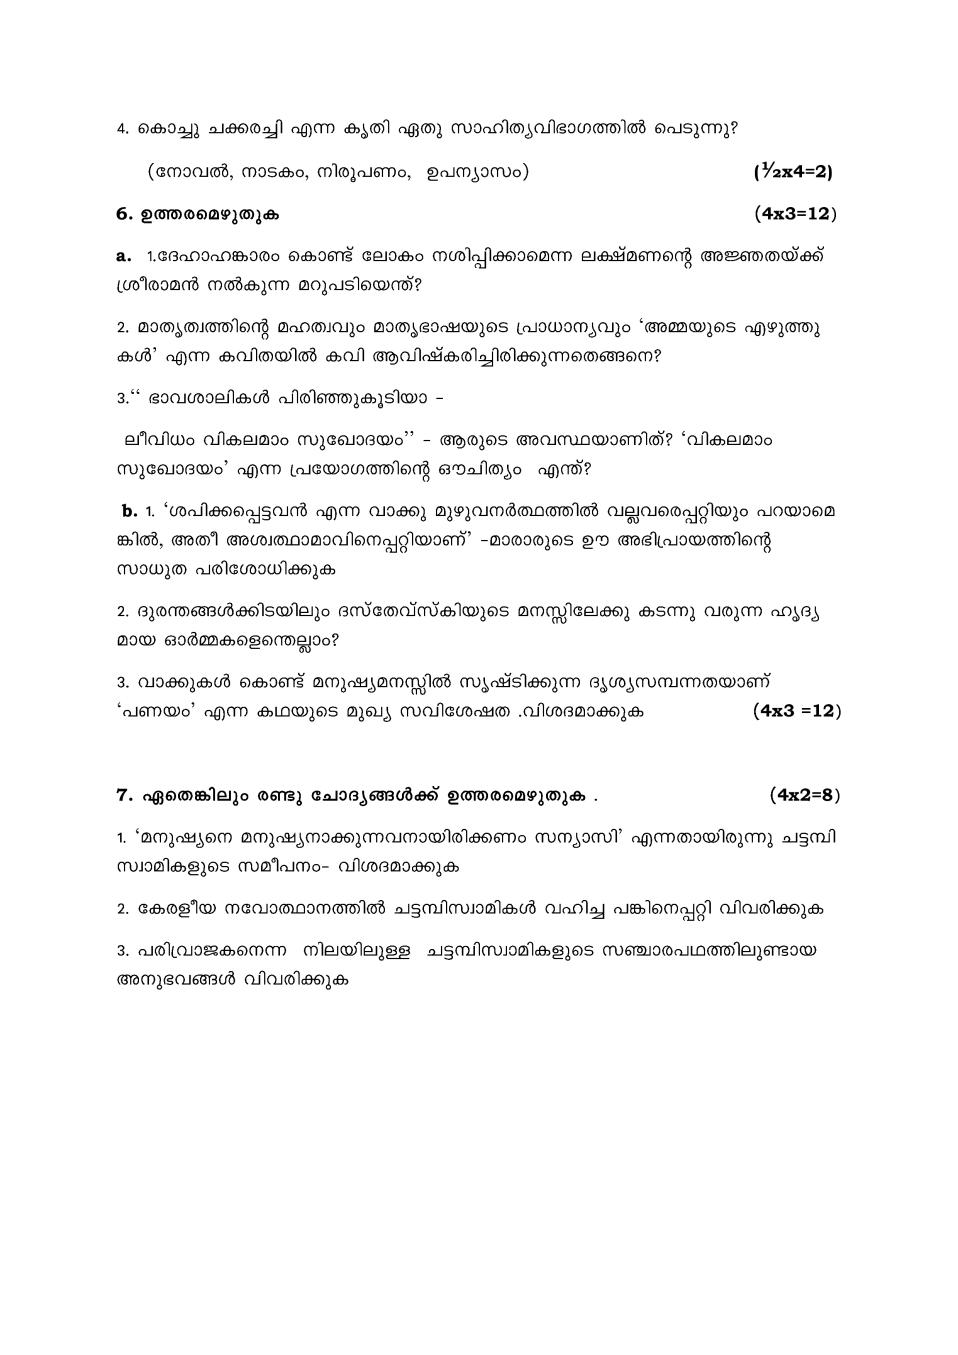 CBSE Sample Papers 2020 for Class 10 – Malayalam